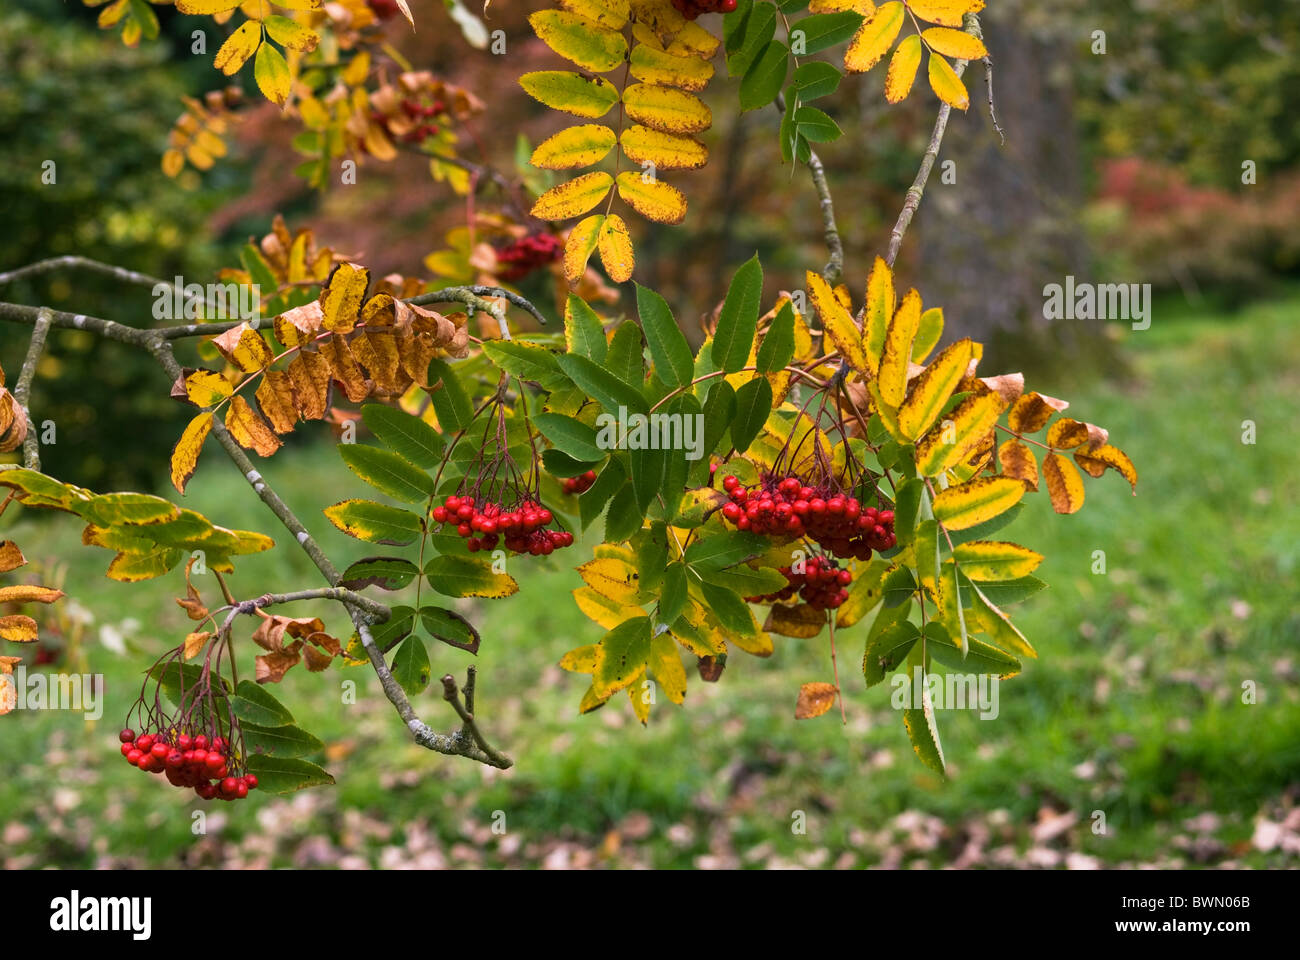 SORBUS DECORA SHOWY MOUNTAIN ASH WITH RED POMES OR BERRIES - Stock Image